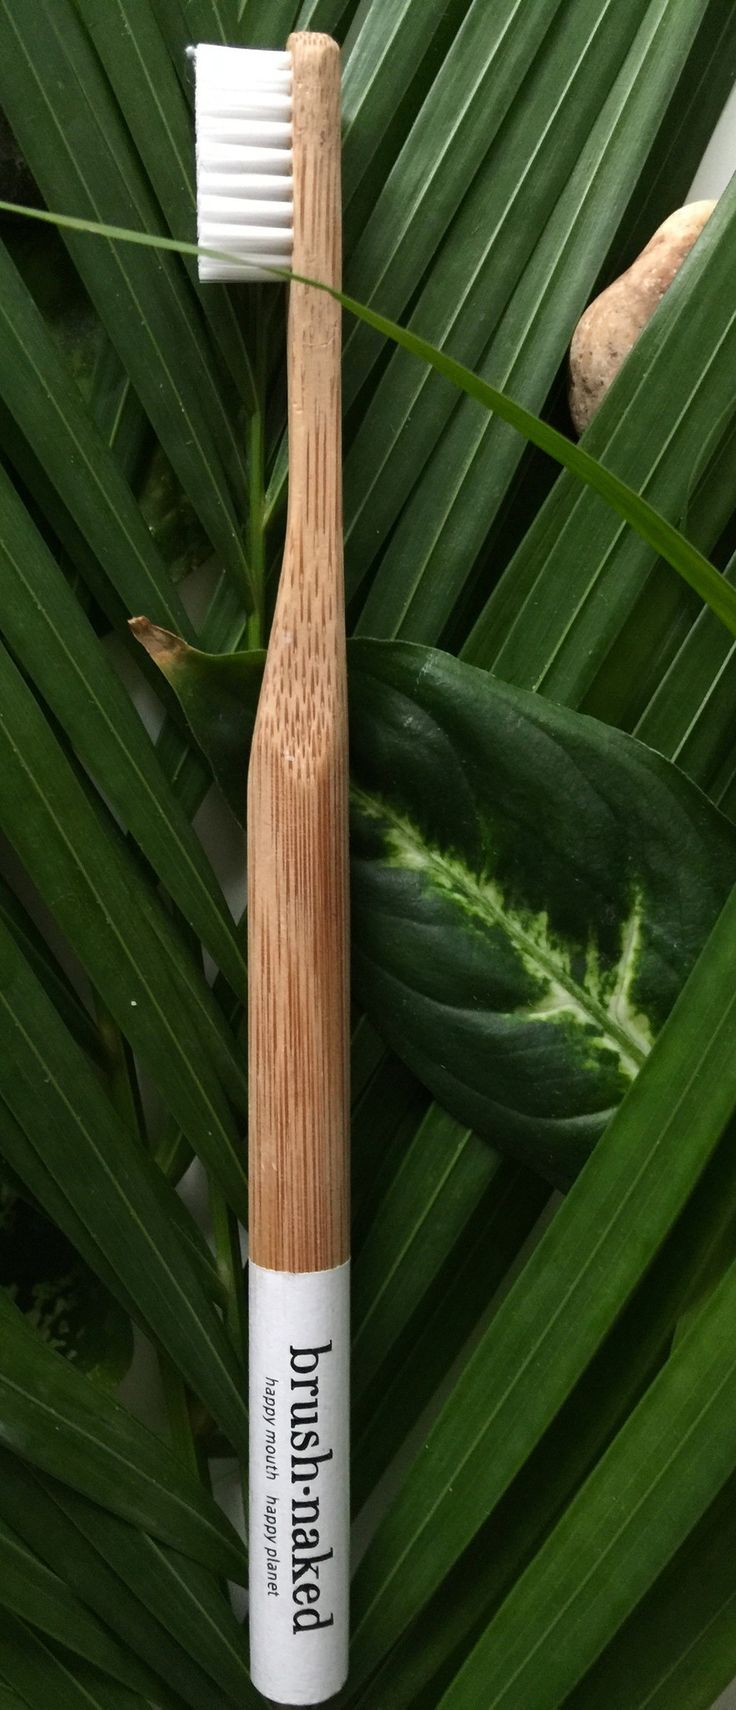 All toothbrushes have a 100% Bamboo Handle and are available in four amazing colors (pink, green, white and naked). Our toothbrushes come in a 100% Biodegradable Cello Wrap. When you order you can cho